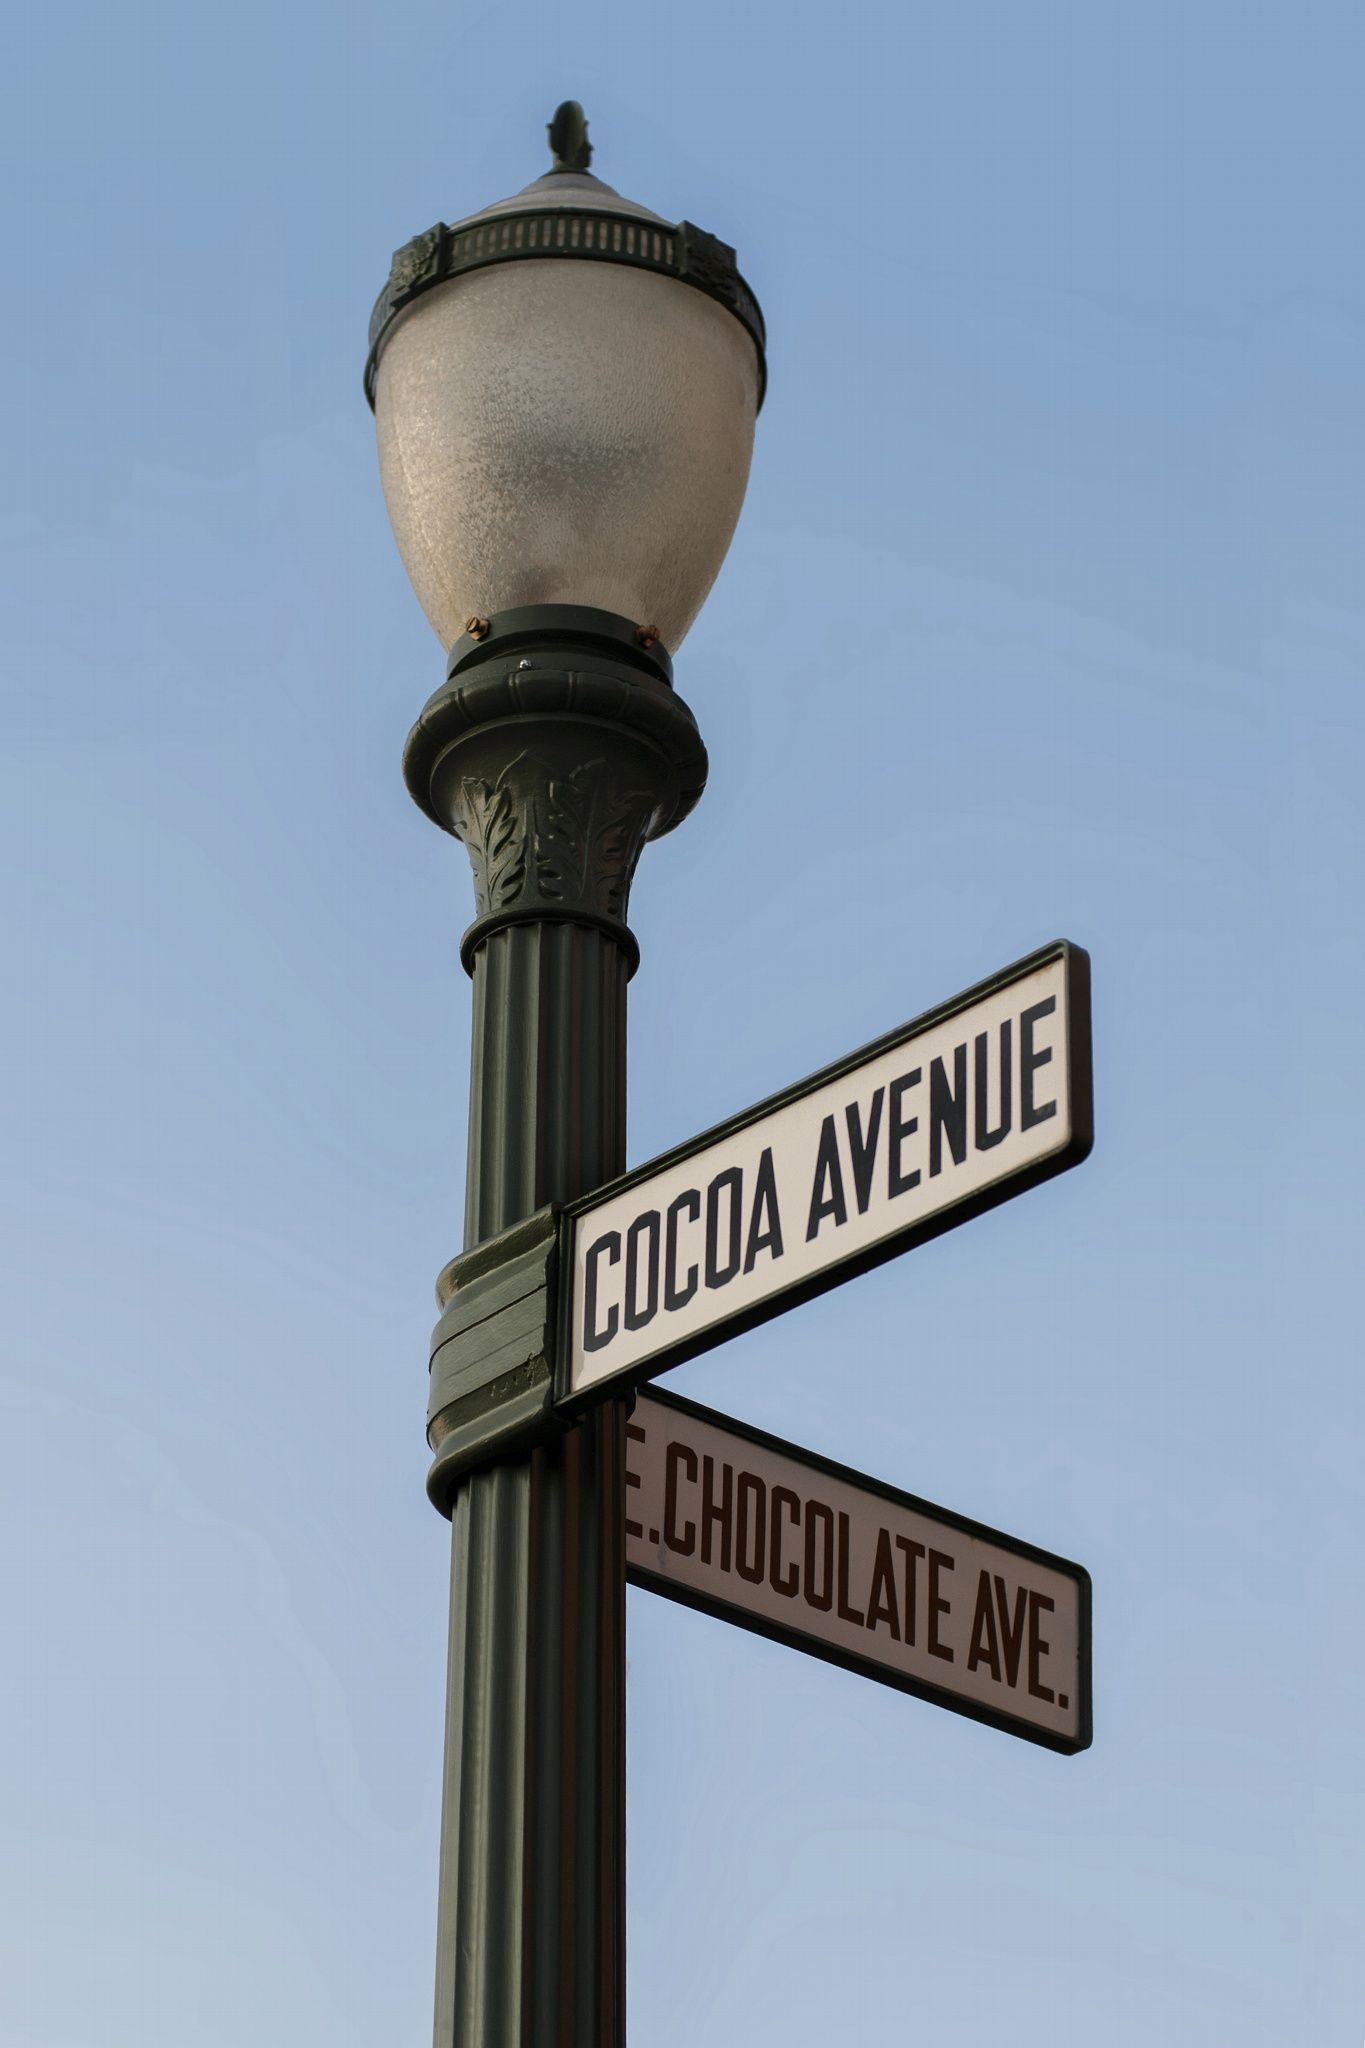 At the Corner of Cocoa and Chocolate by Frances Civello on 500px